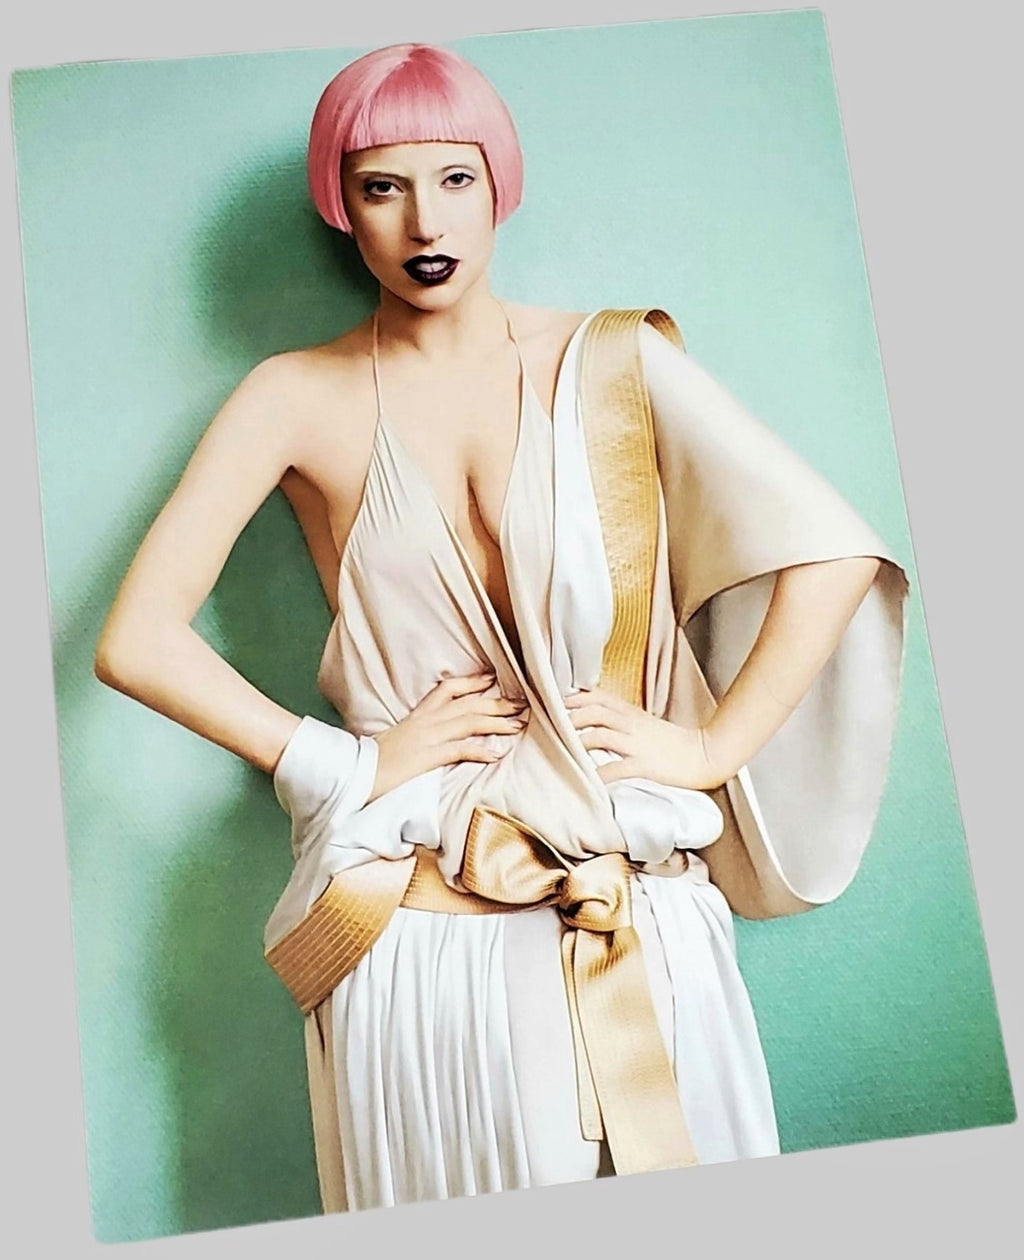 Lady Gaga photograph Vogue March 2011. Photograph page featured in Vogue x Music book